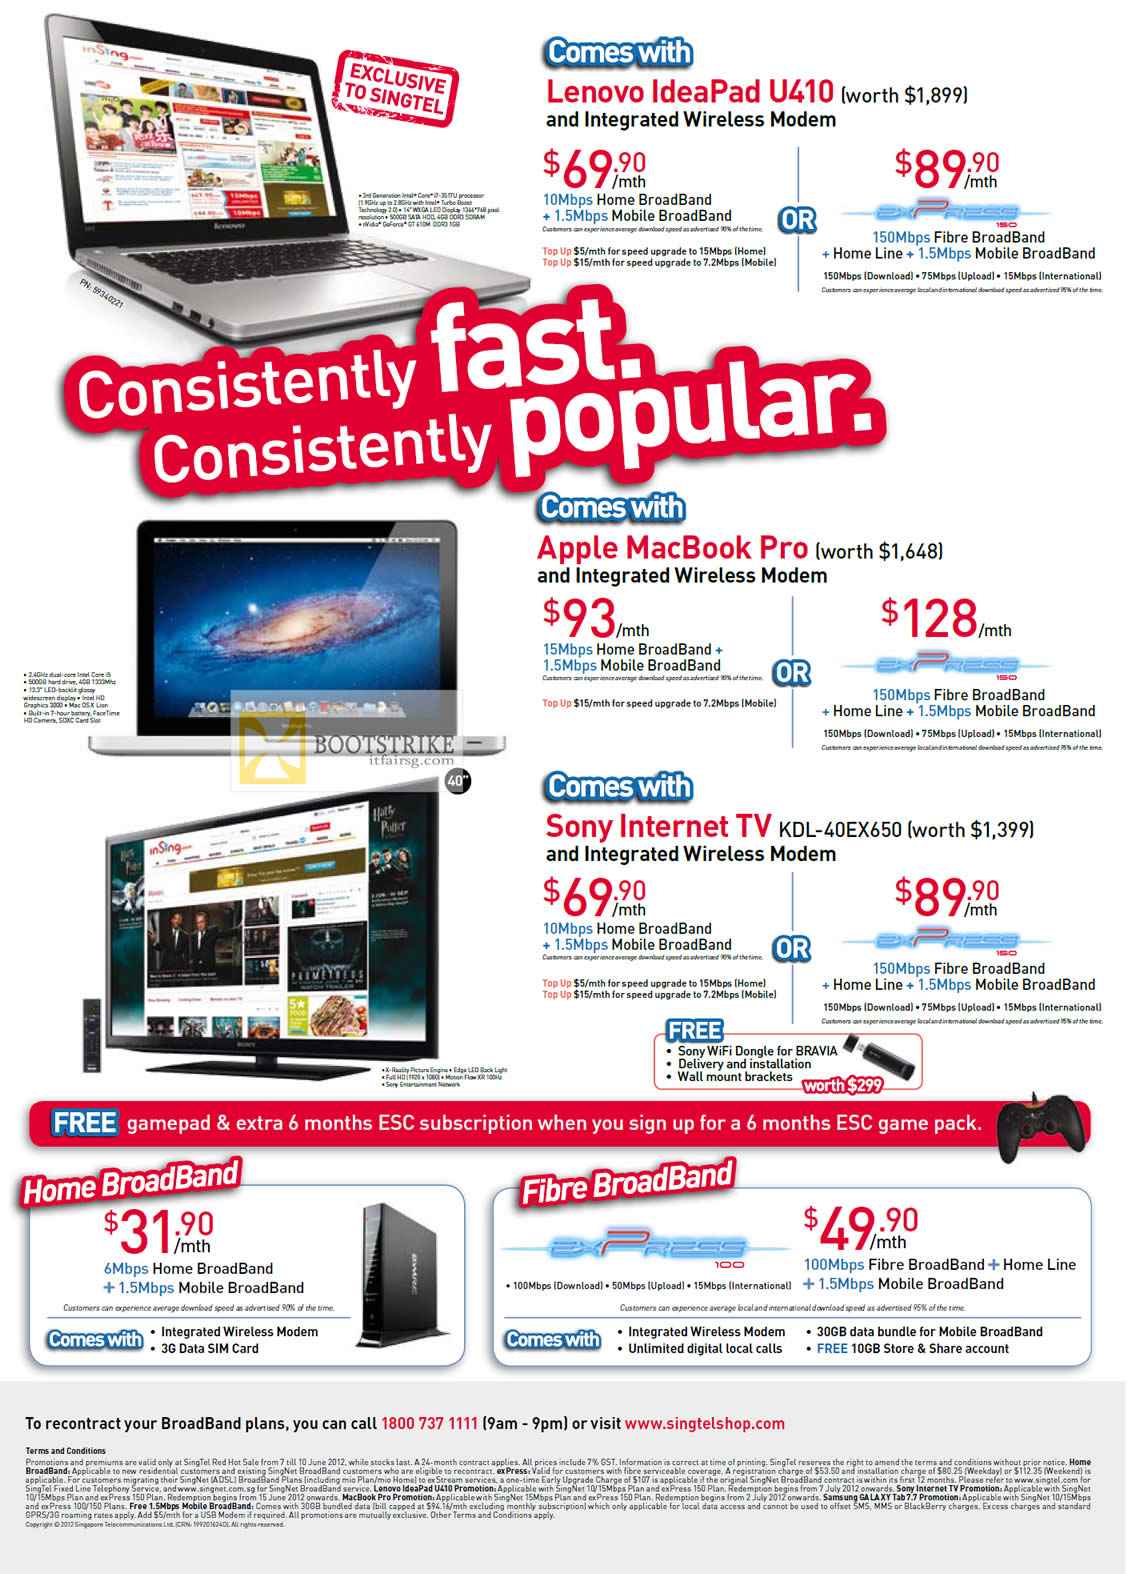 PC SHOW 2012 price list image brochure of Singtel Broadband ADSL Free Lenovo IdeaPad U410, Apple Macbook Pro, Sony TV KDL-40EX650, Fibre